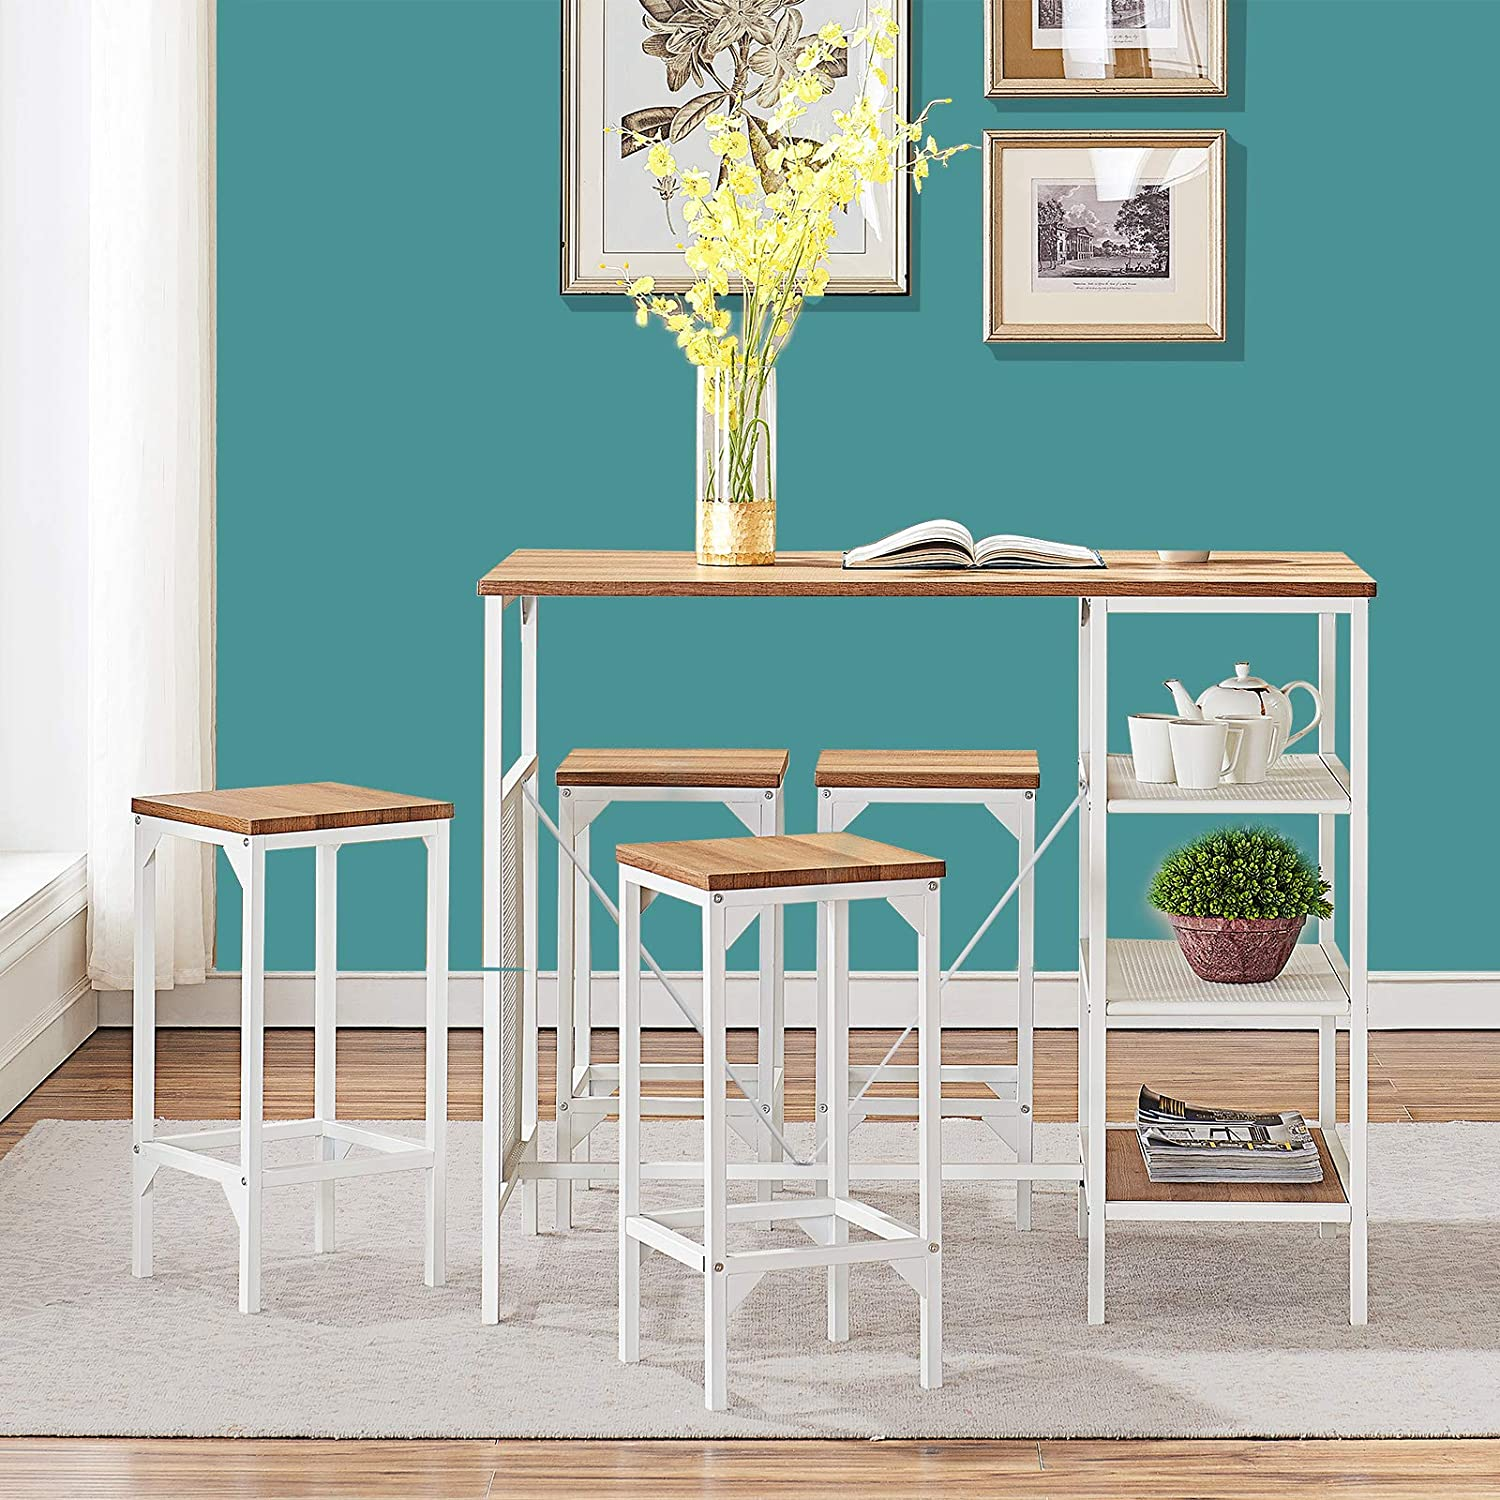 O&K FURNITURE Small 5-Piece Dining Room Bar Table Set, Modern Industrial Bistro Restaurant Dining Table and Stool Set, Home Kitchen Furniture, Oak Finish